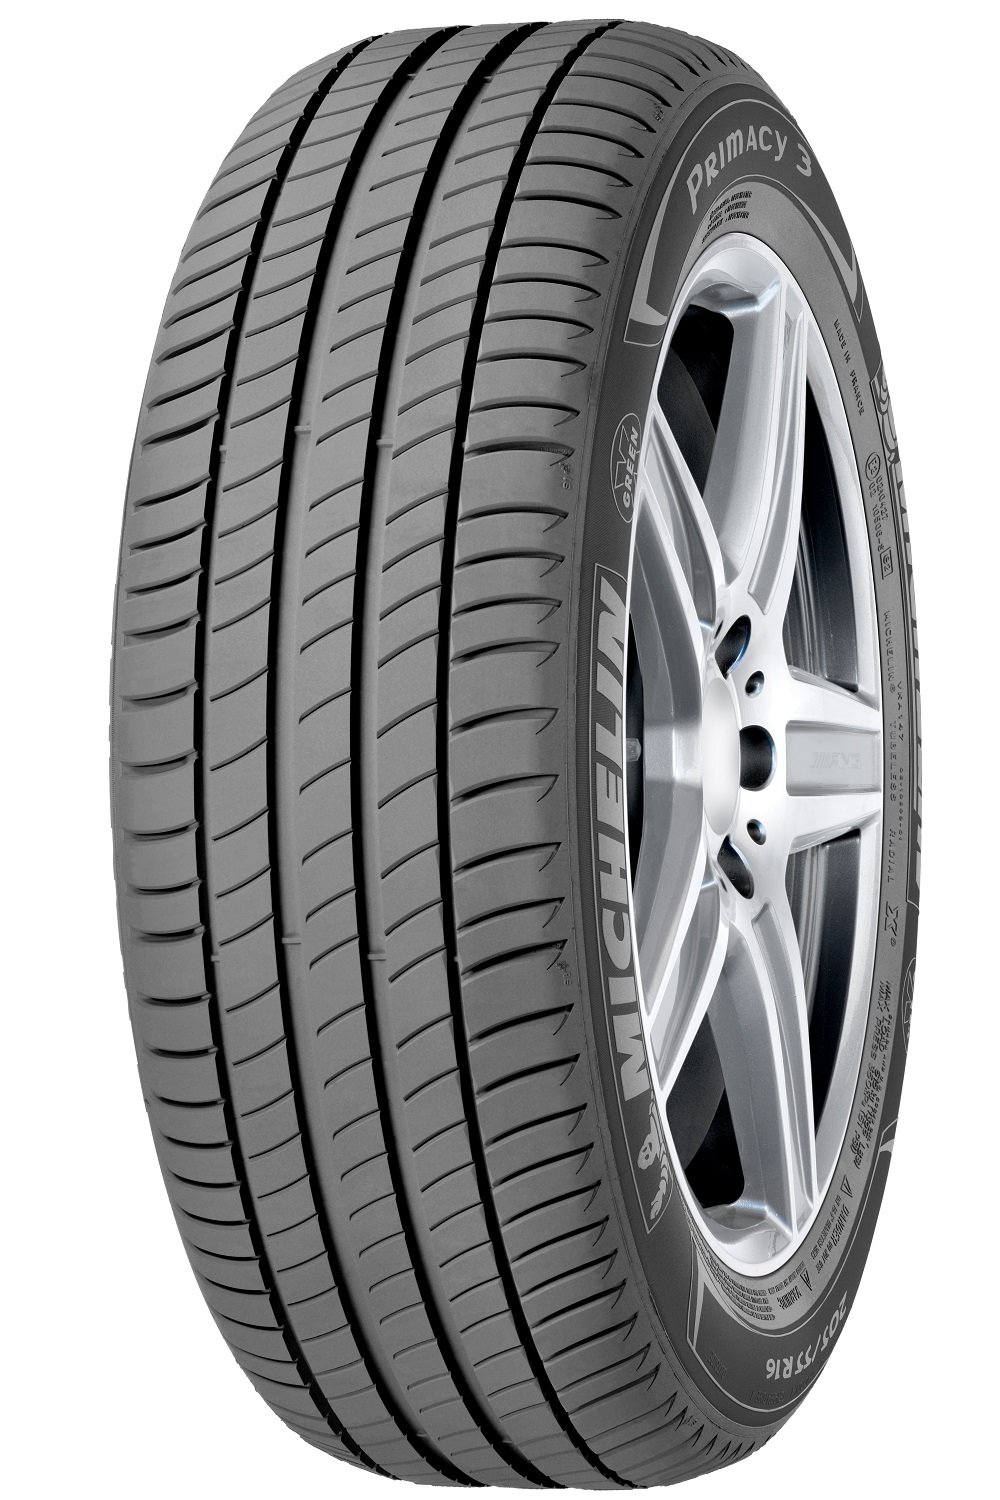 neumatico michelin primacy 3 225 50 17 94 v